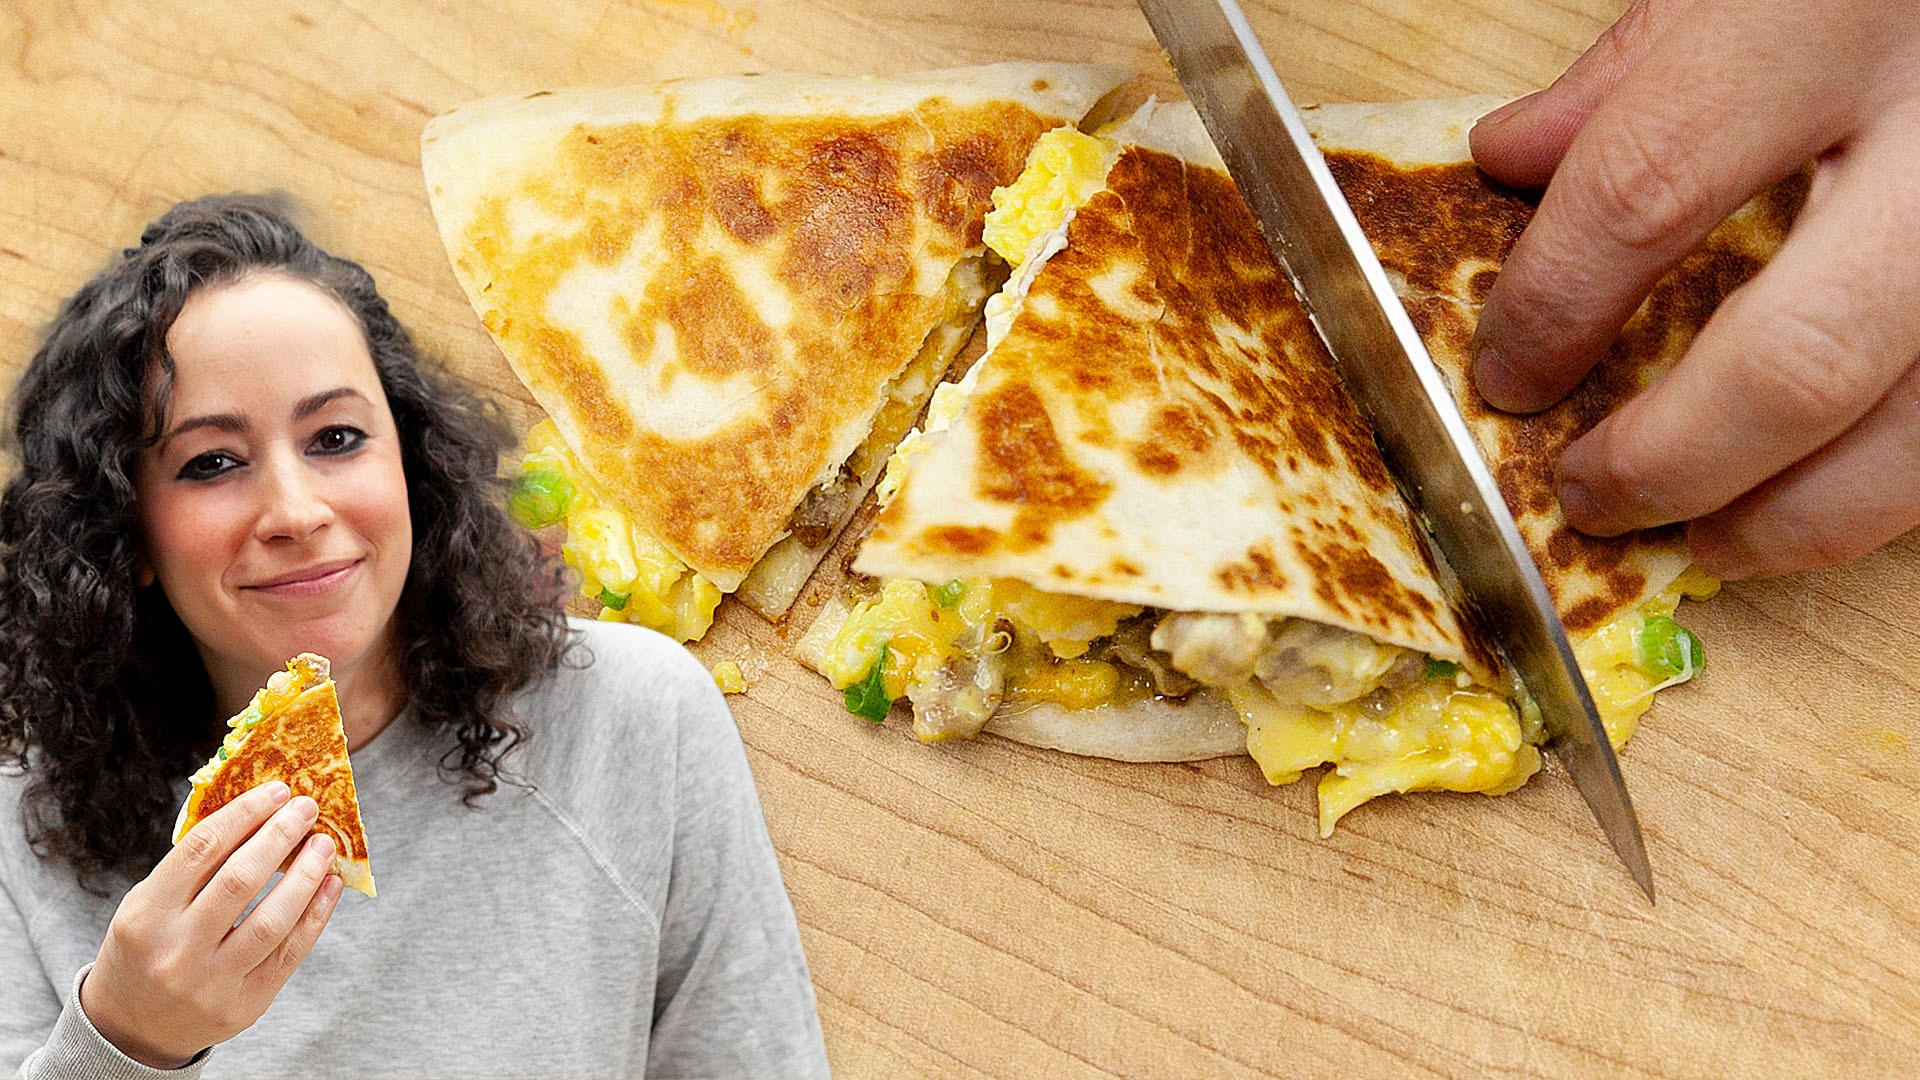 Farideh's Sausage And Soft Scramble Breakfast Quesadilla - The Cooking Show